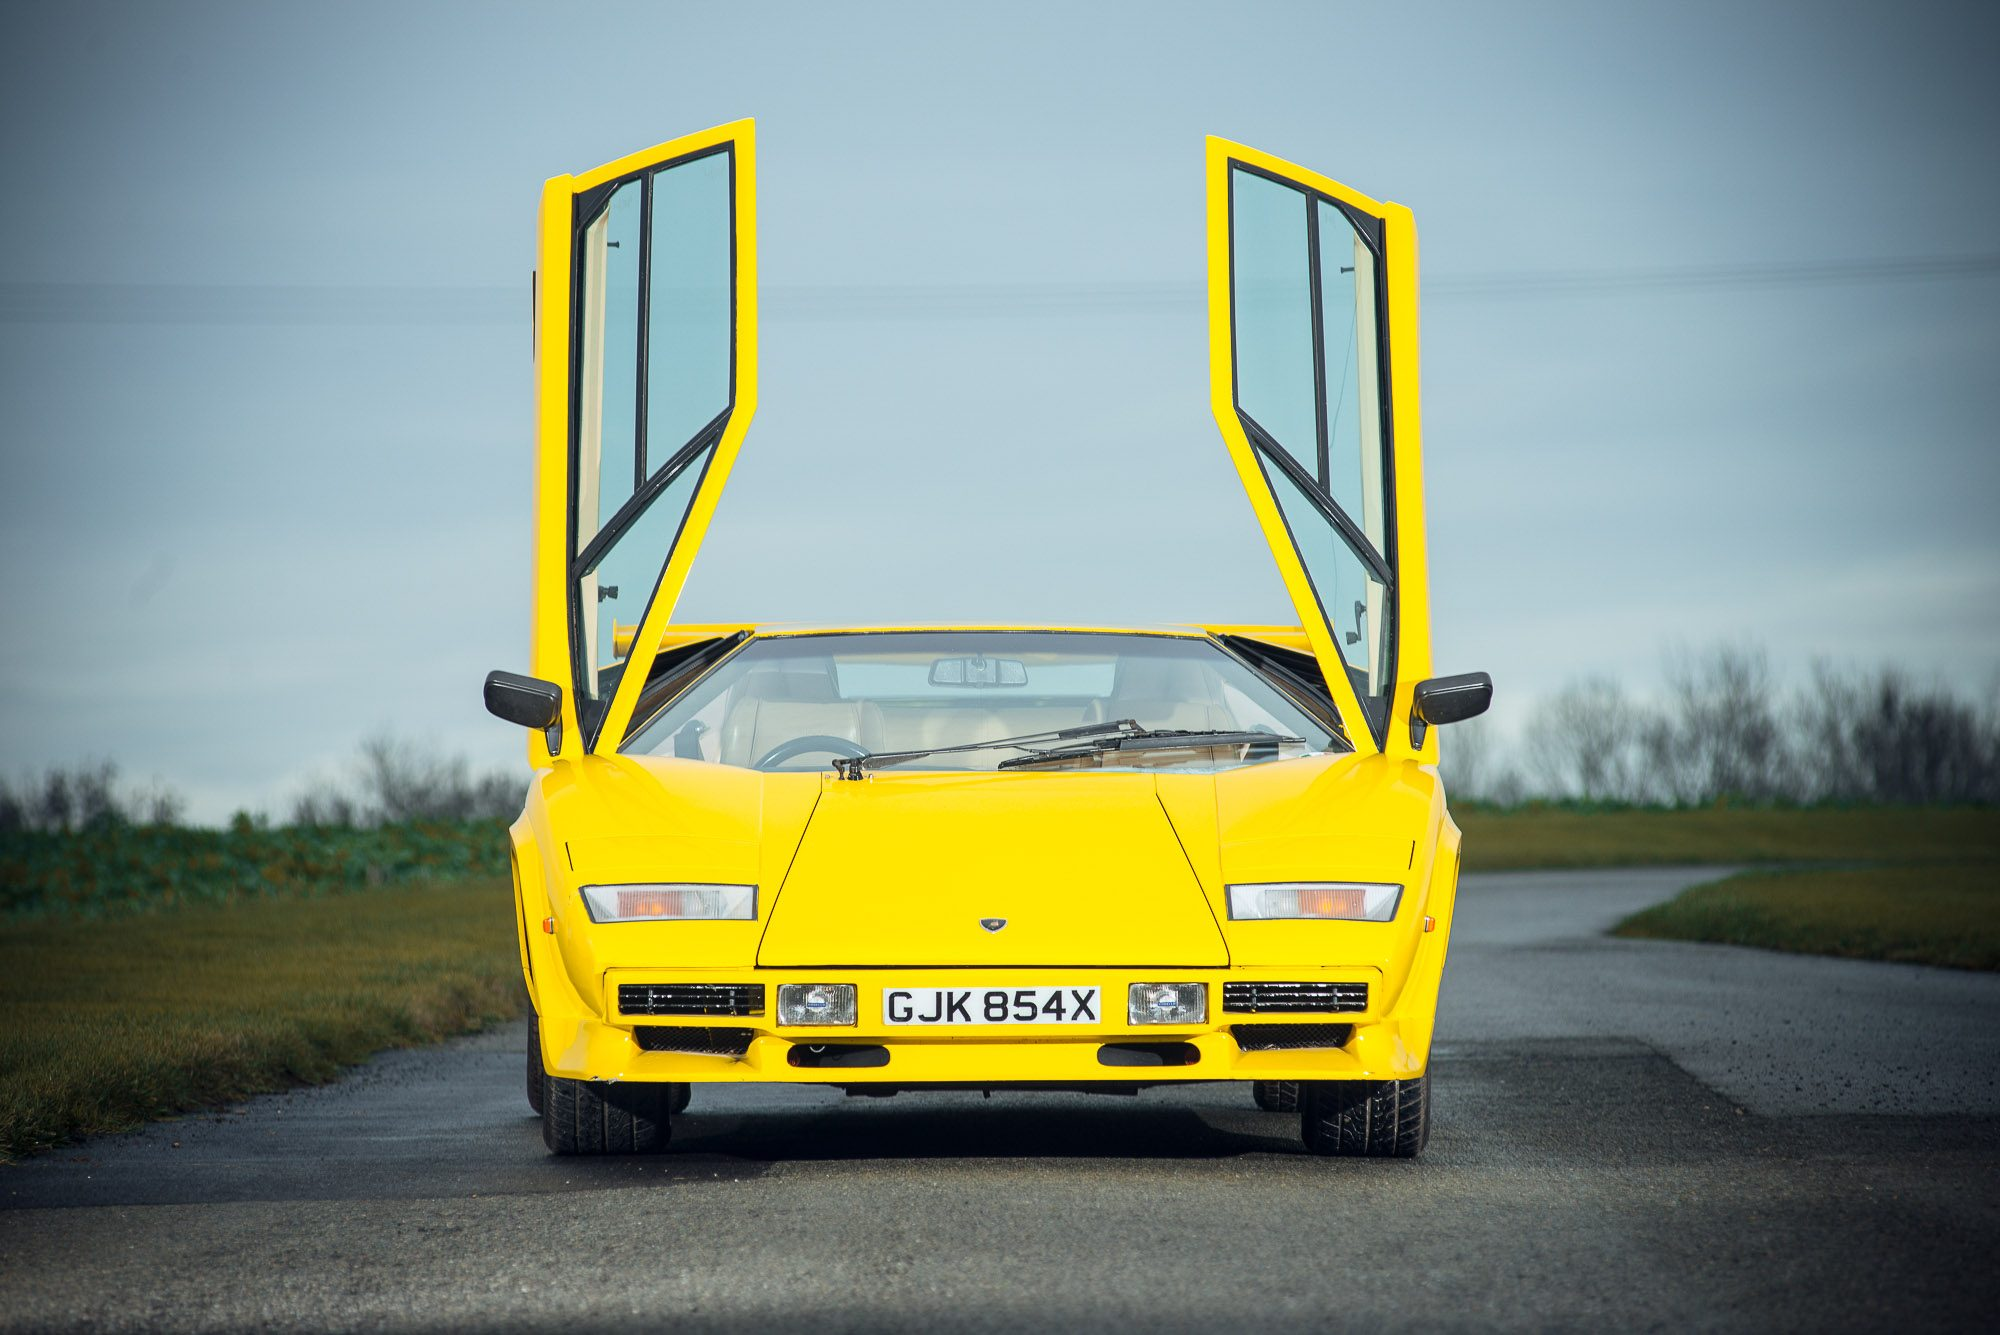 If You Drive On The Right You Should Drive This Lamborghini Countach Petrolicious